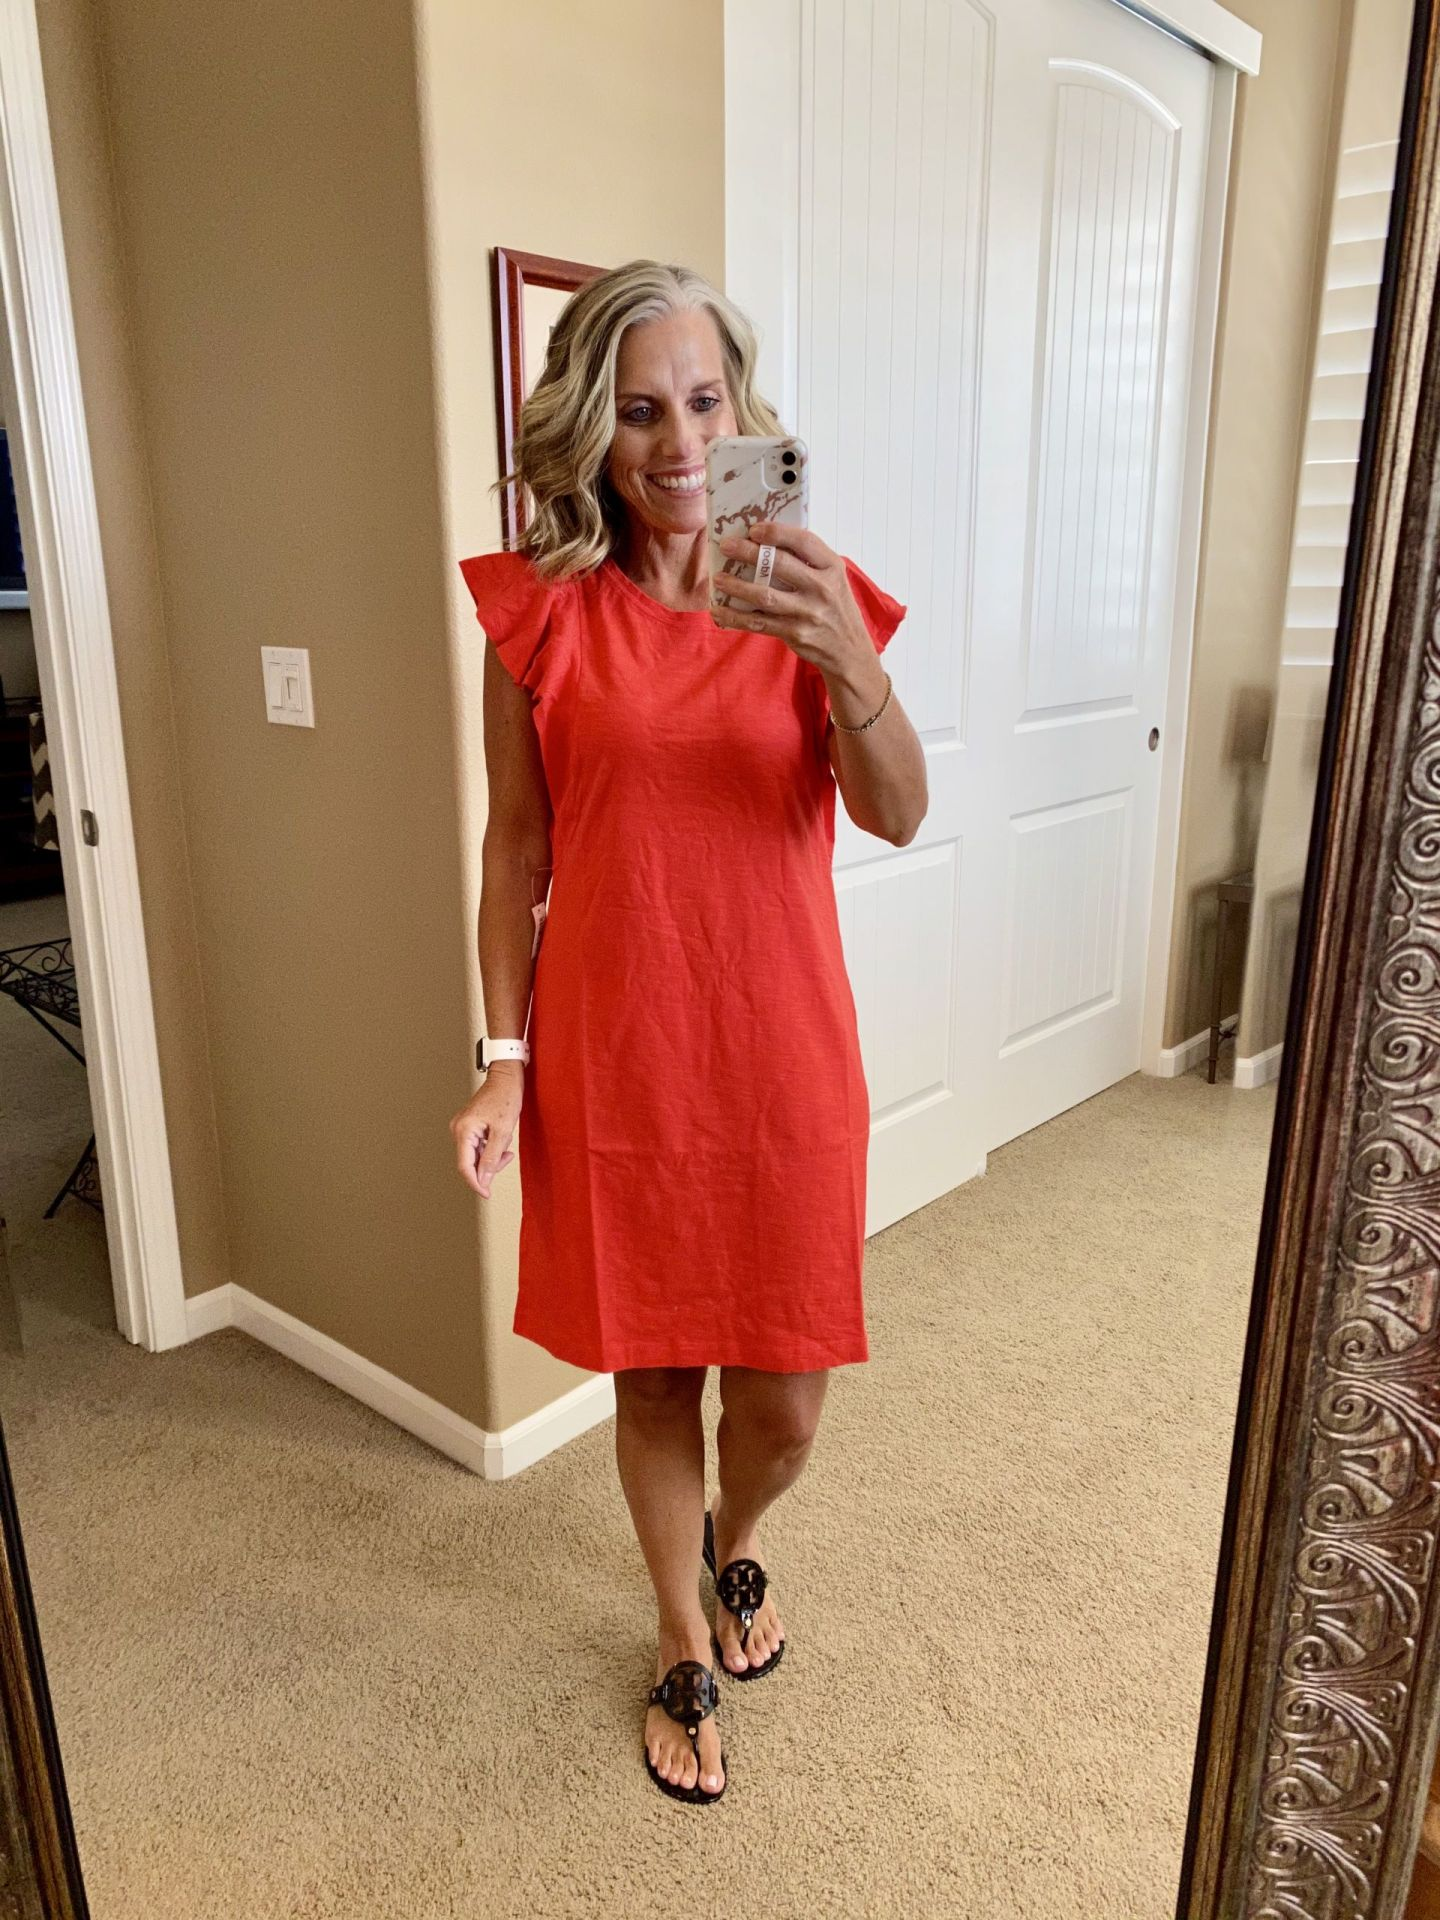 T-shirt dress, Amazon Prime Wardrobe